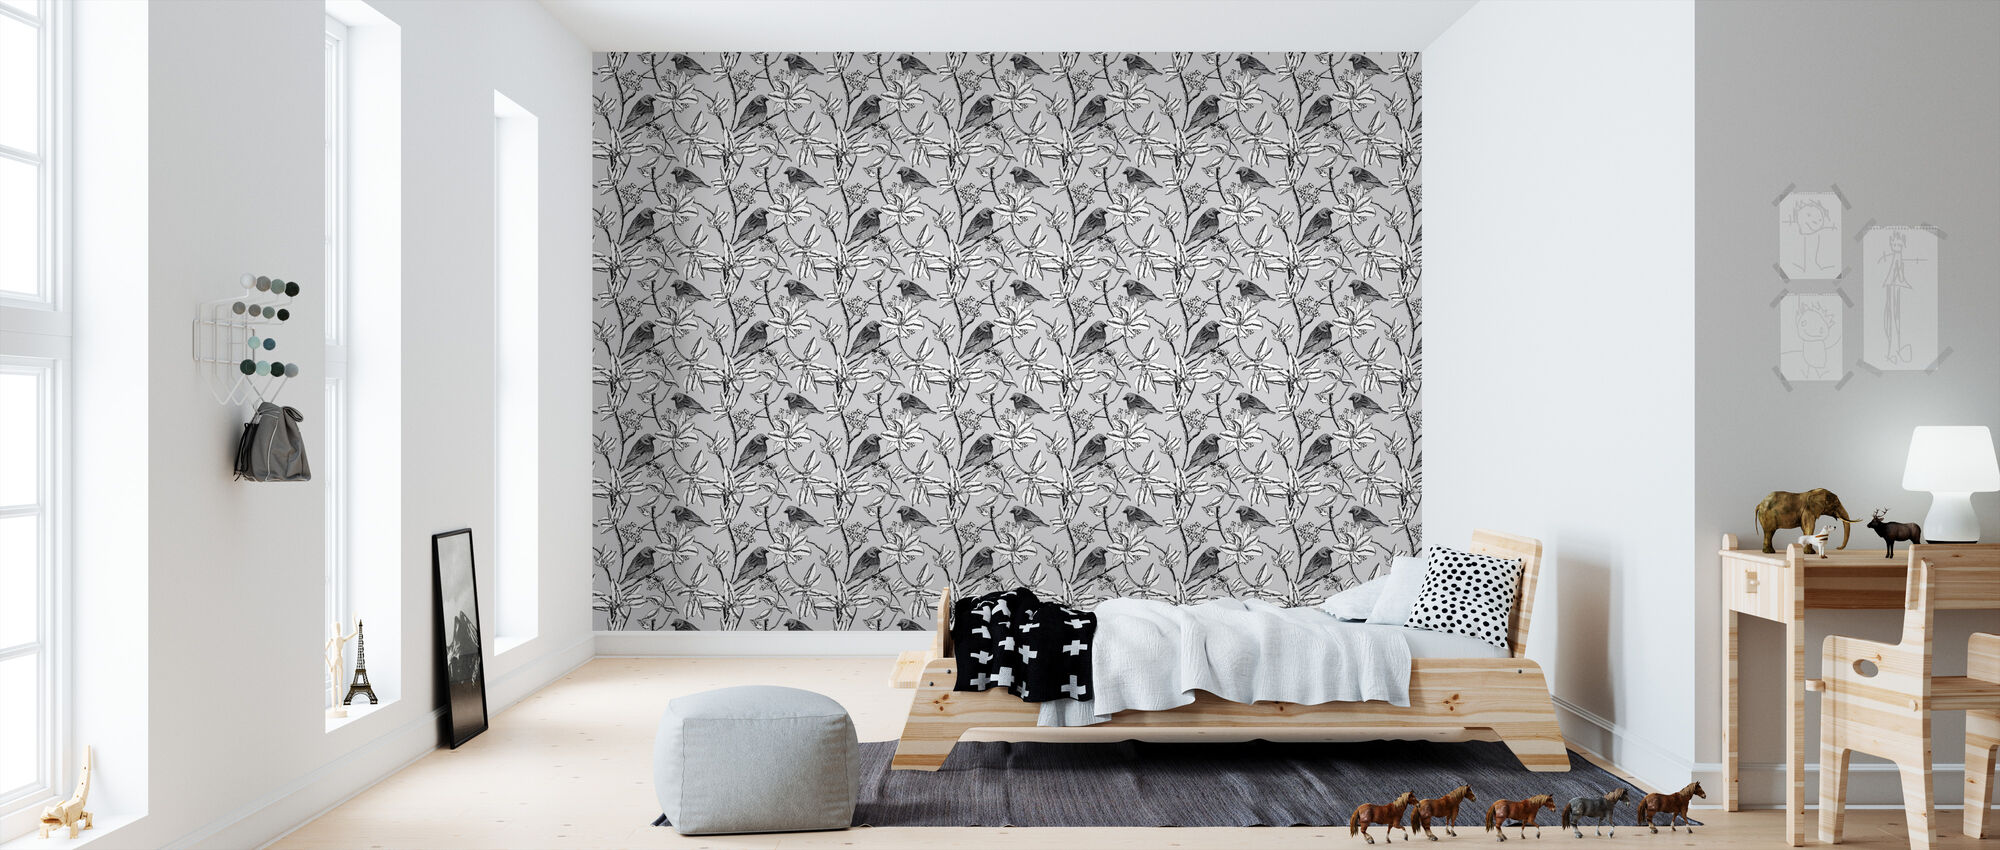 finch grey eine tapete f r jeden raum und jedes ambiente photowall. Black Bedroom Furniture Sets. Home Design Ideas